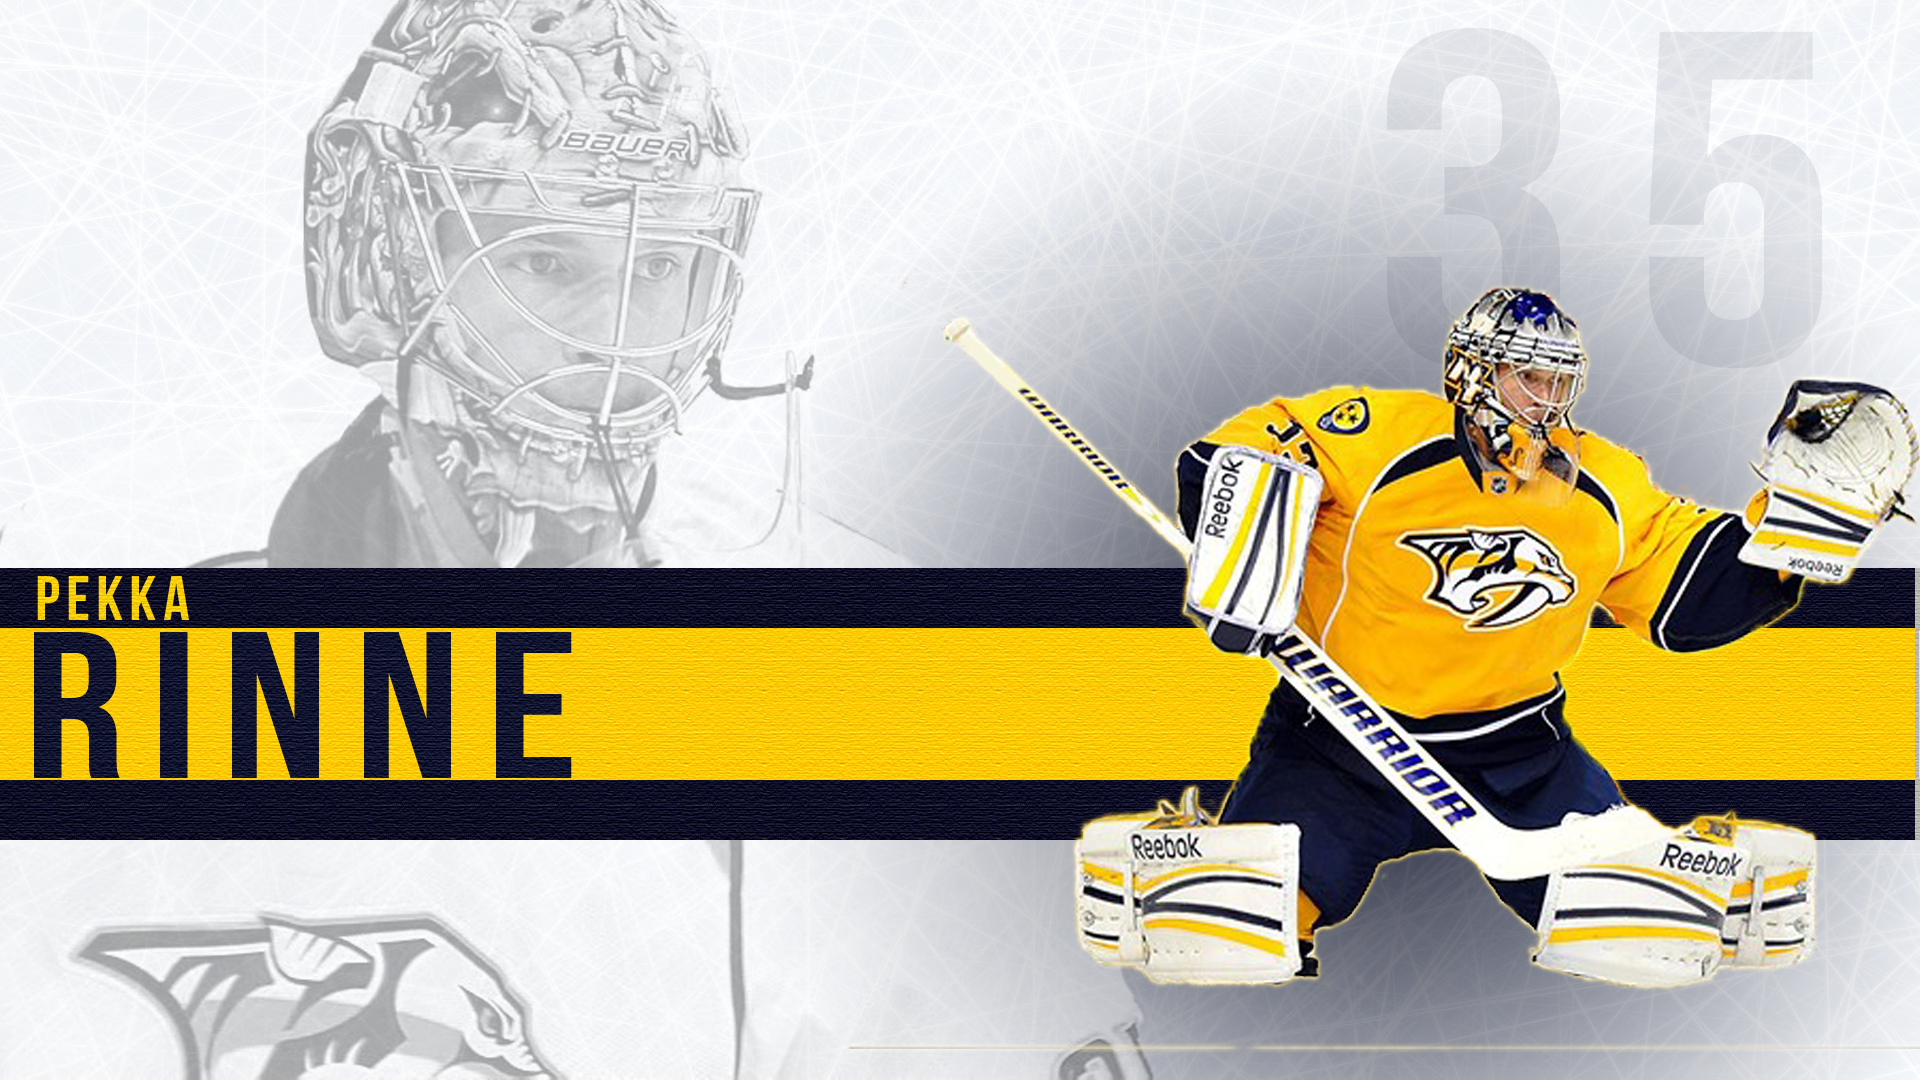 Hockey player Pekka Rinne wallpapers and images   wallpapers 1920x1080